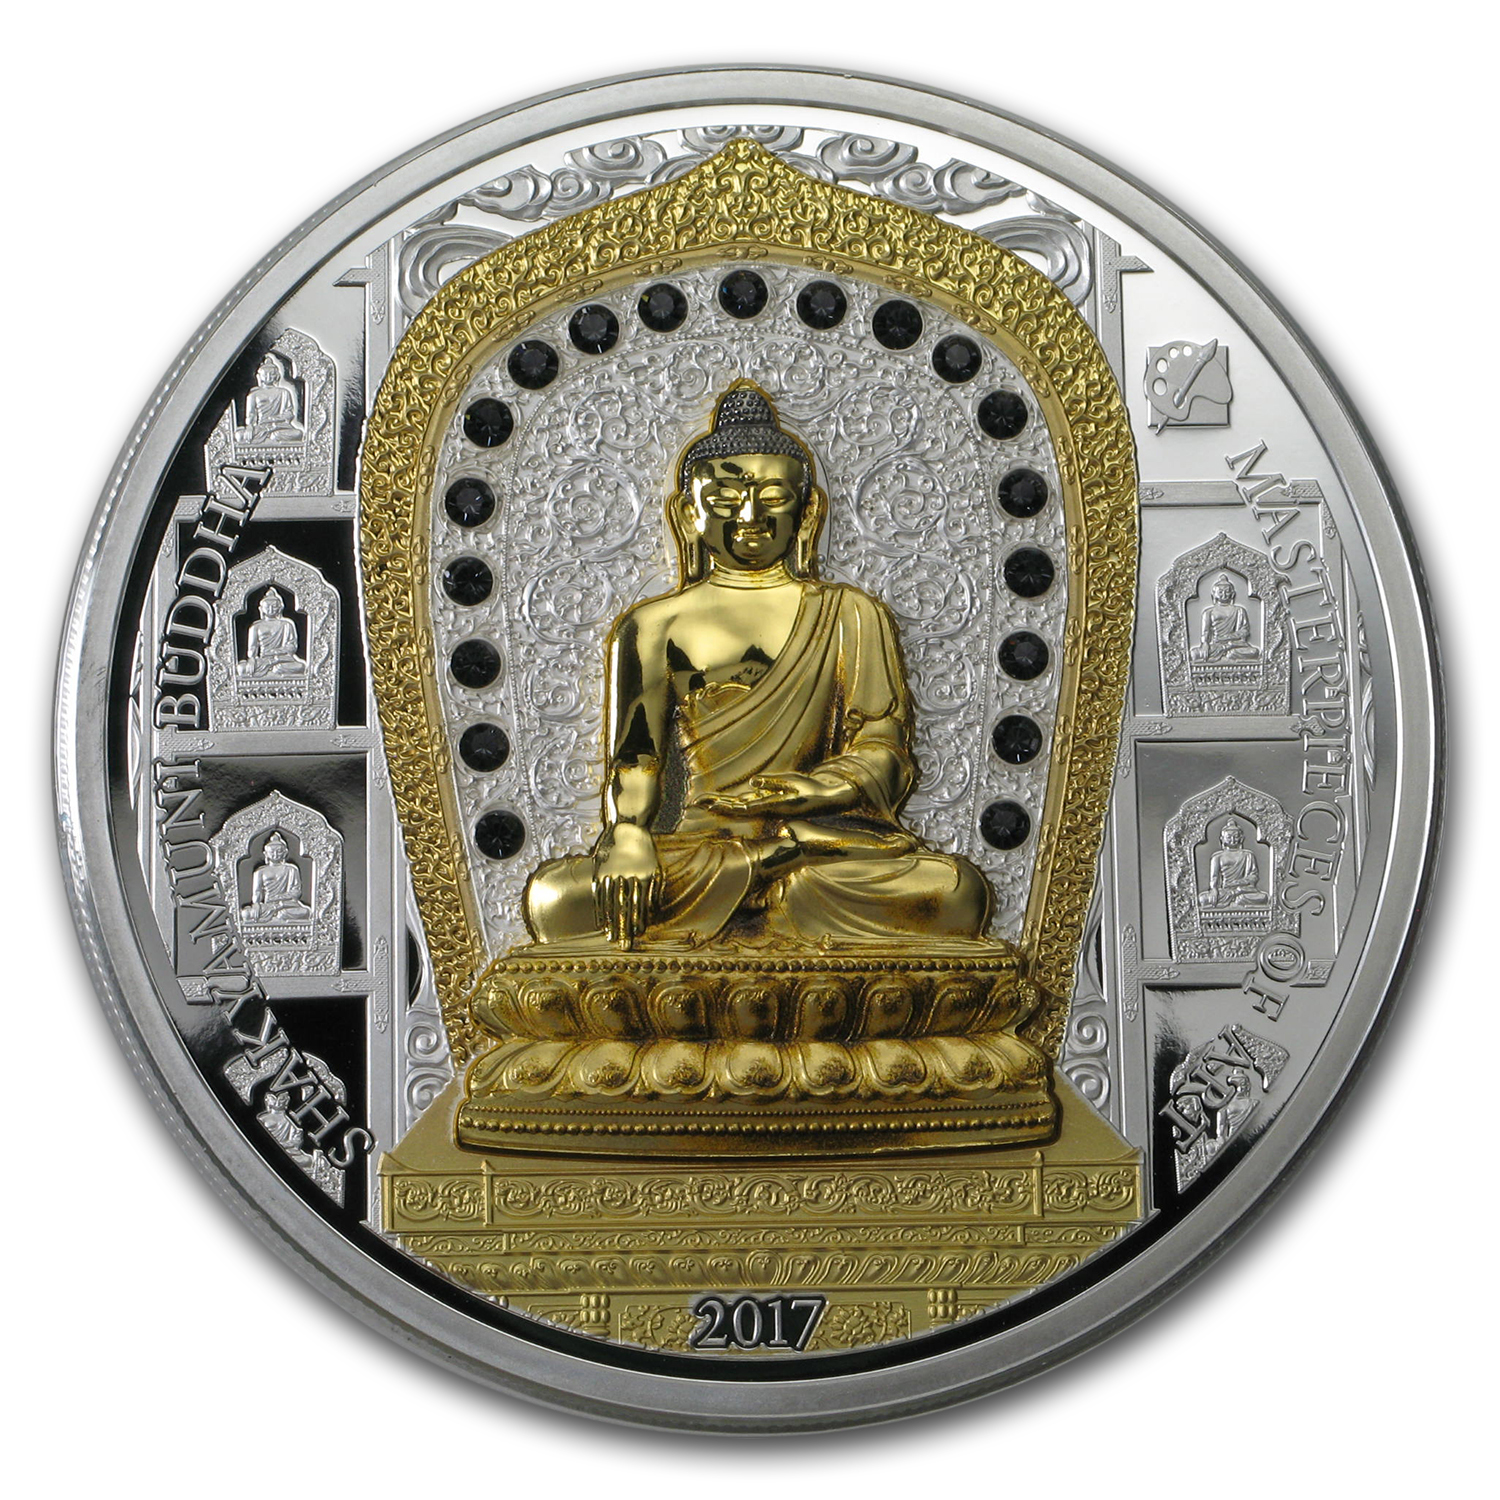 2017 Cook Islands Gold/Silver Shakyamuni Buddha Proof